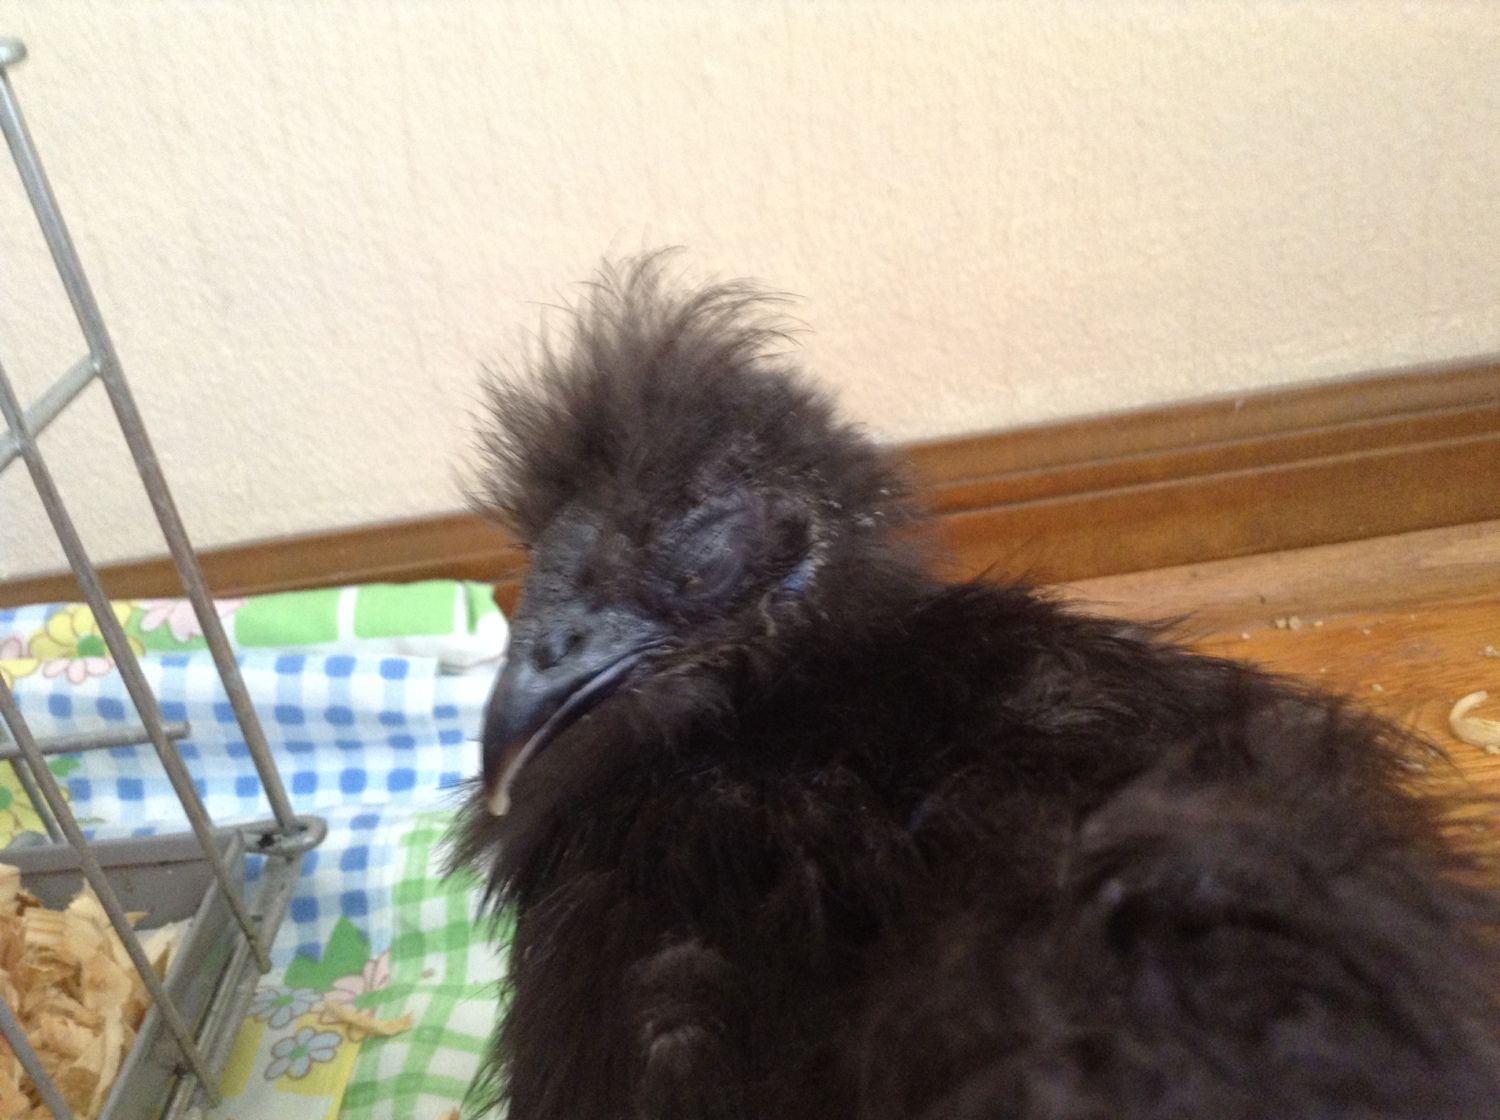 jha31452's photos in Silkies rescued, sickly, and weak.